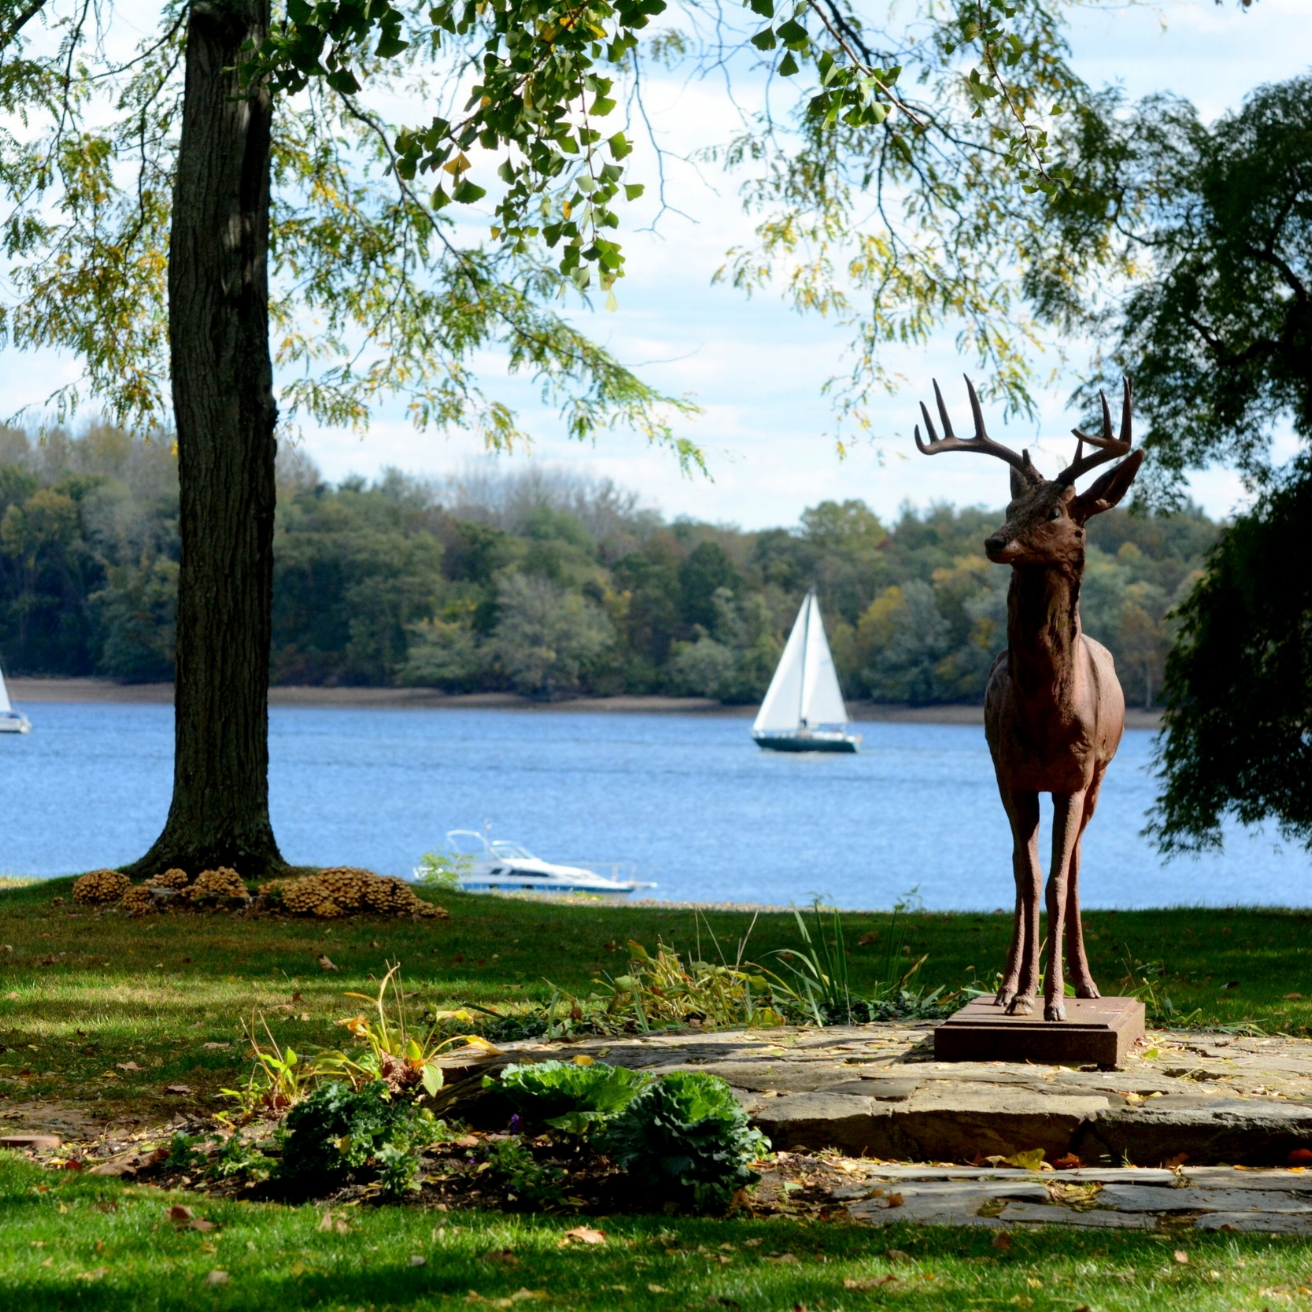 deer state with boats in background - Lisa Varley.jpg